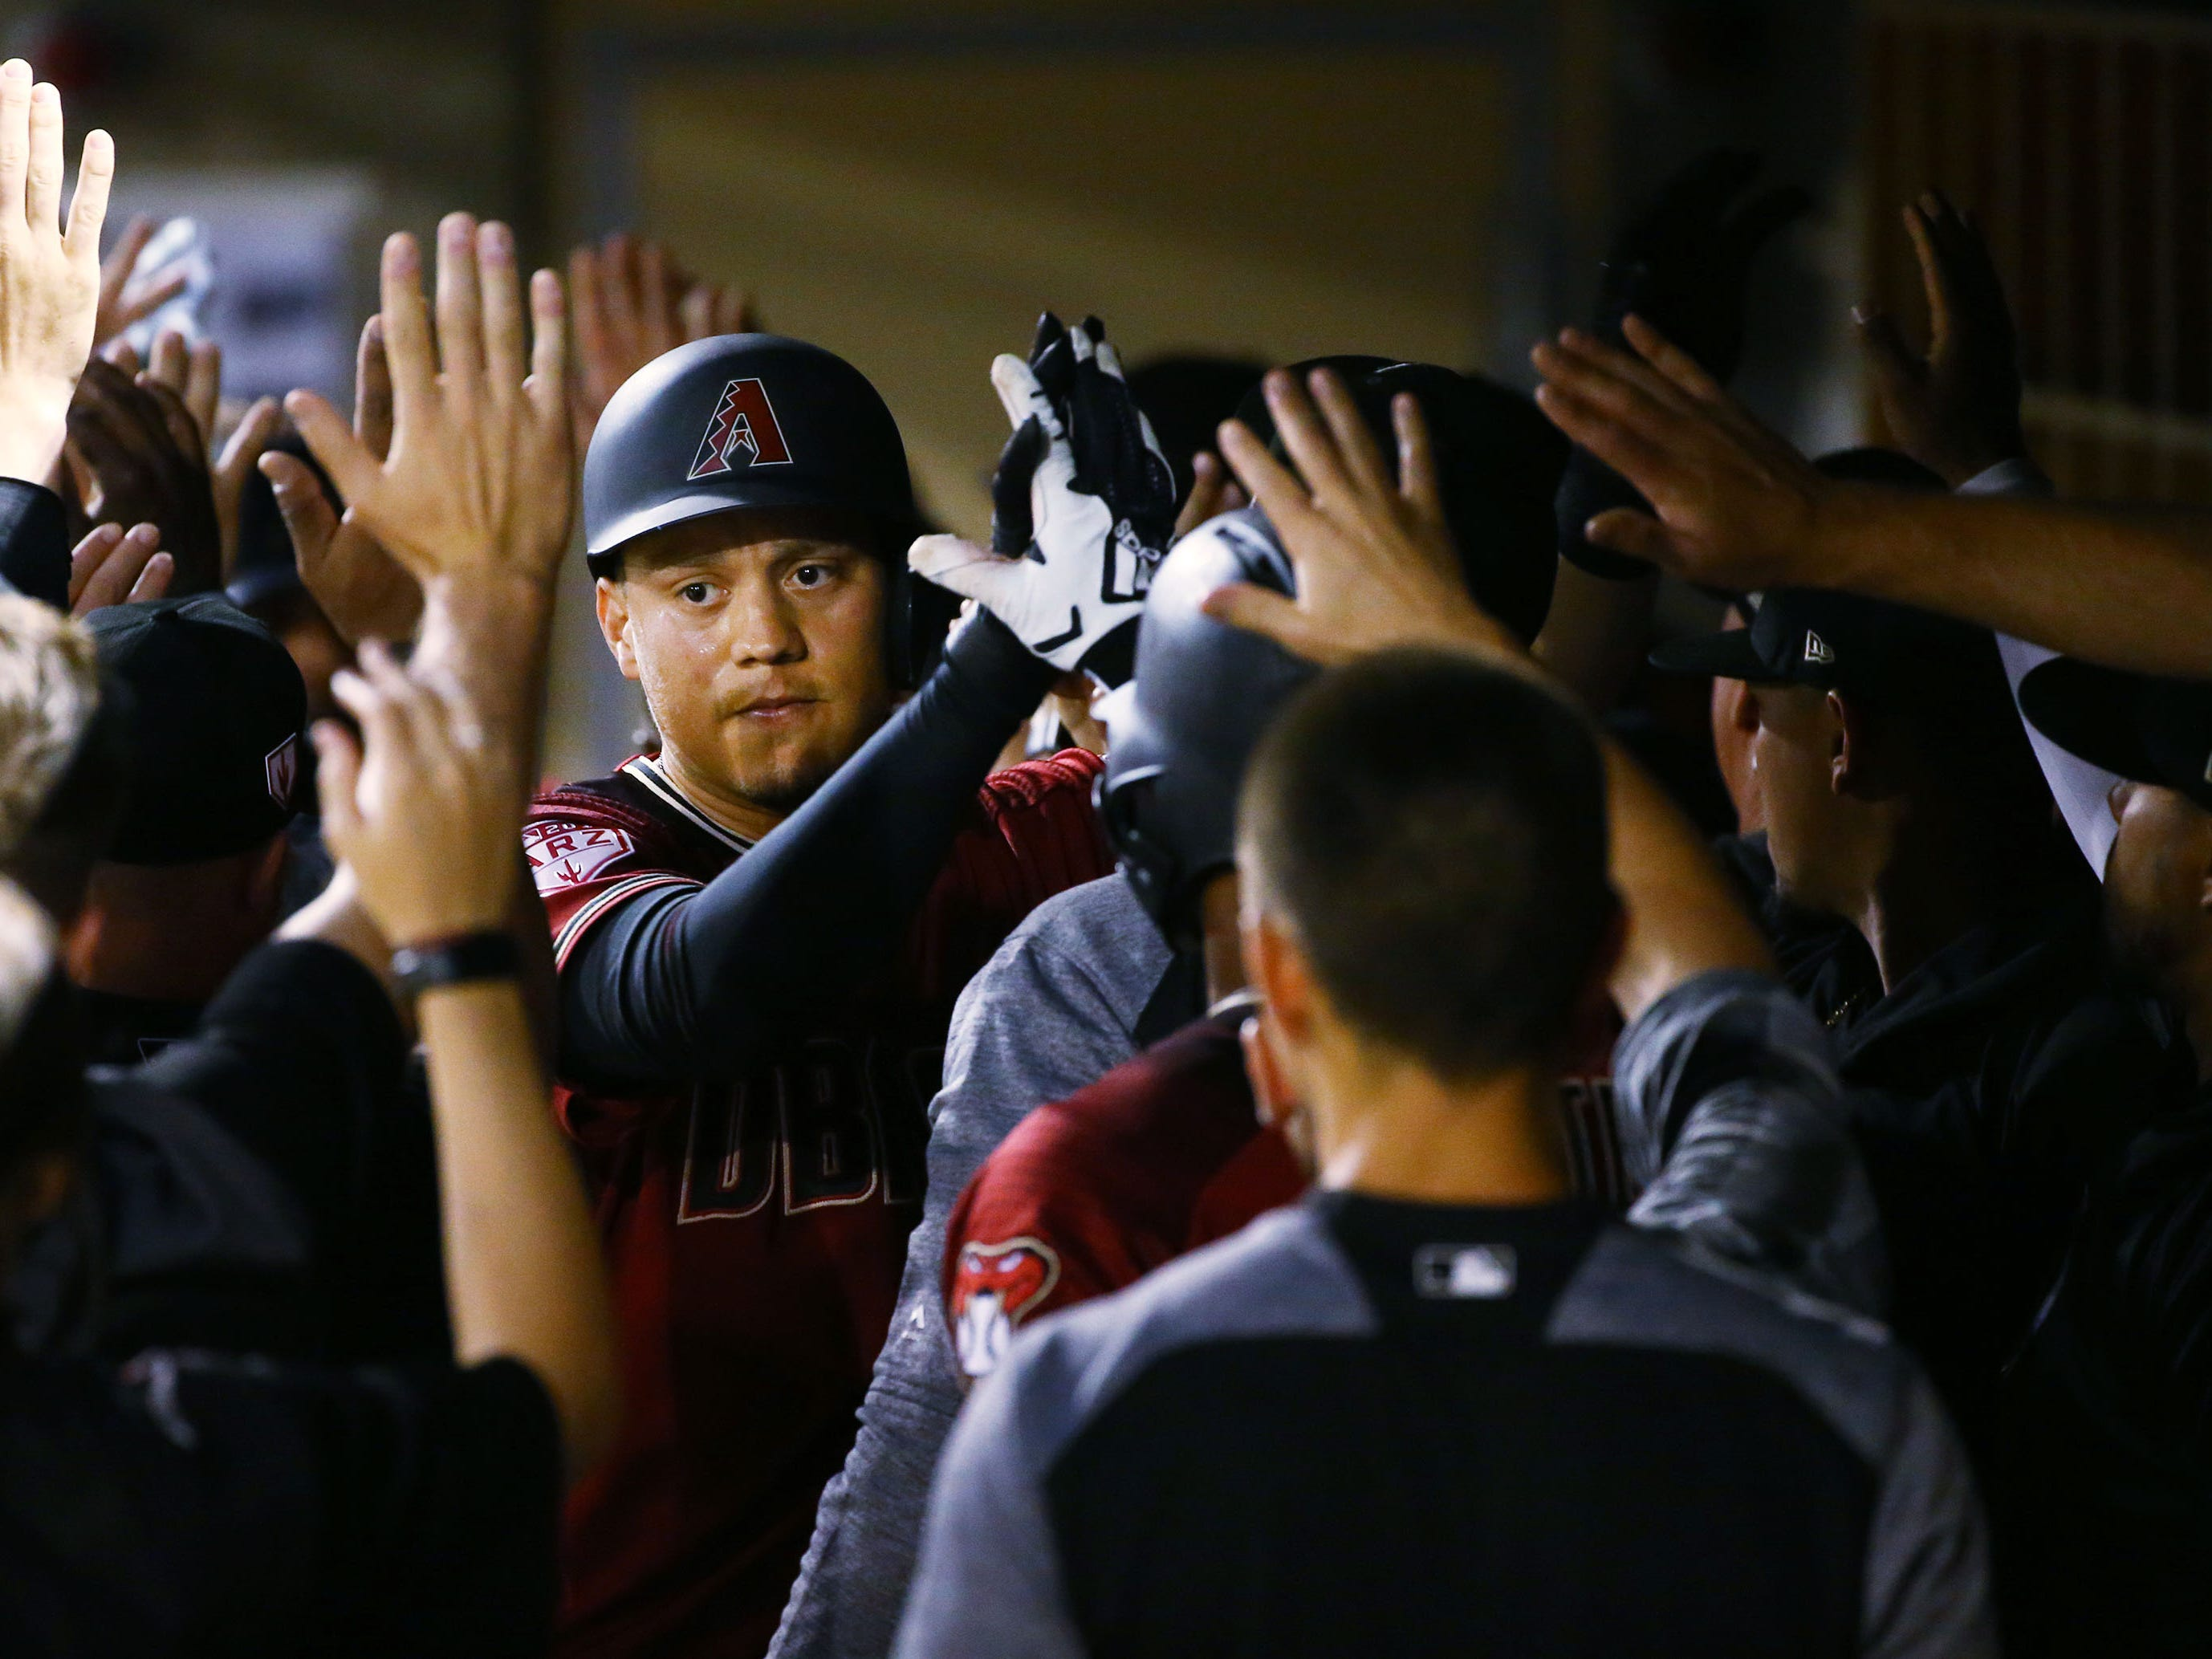 Arizona Diamondbacks Wilmer Flores (41) receives high-fives after hitting a RBI-sacrifice fly ball scoring David Peralta against the San Diego Padres in the first inning during a spring training game on Mar. 19, 2019 at Salt River Fields in Scottsdale, Ariz.